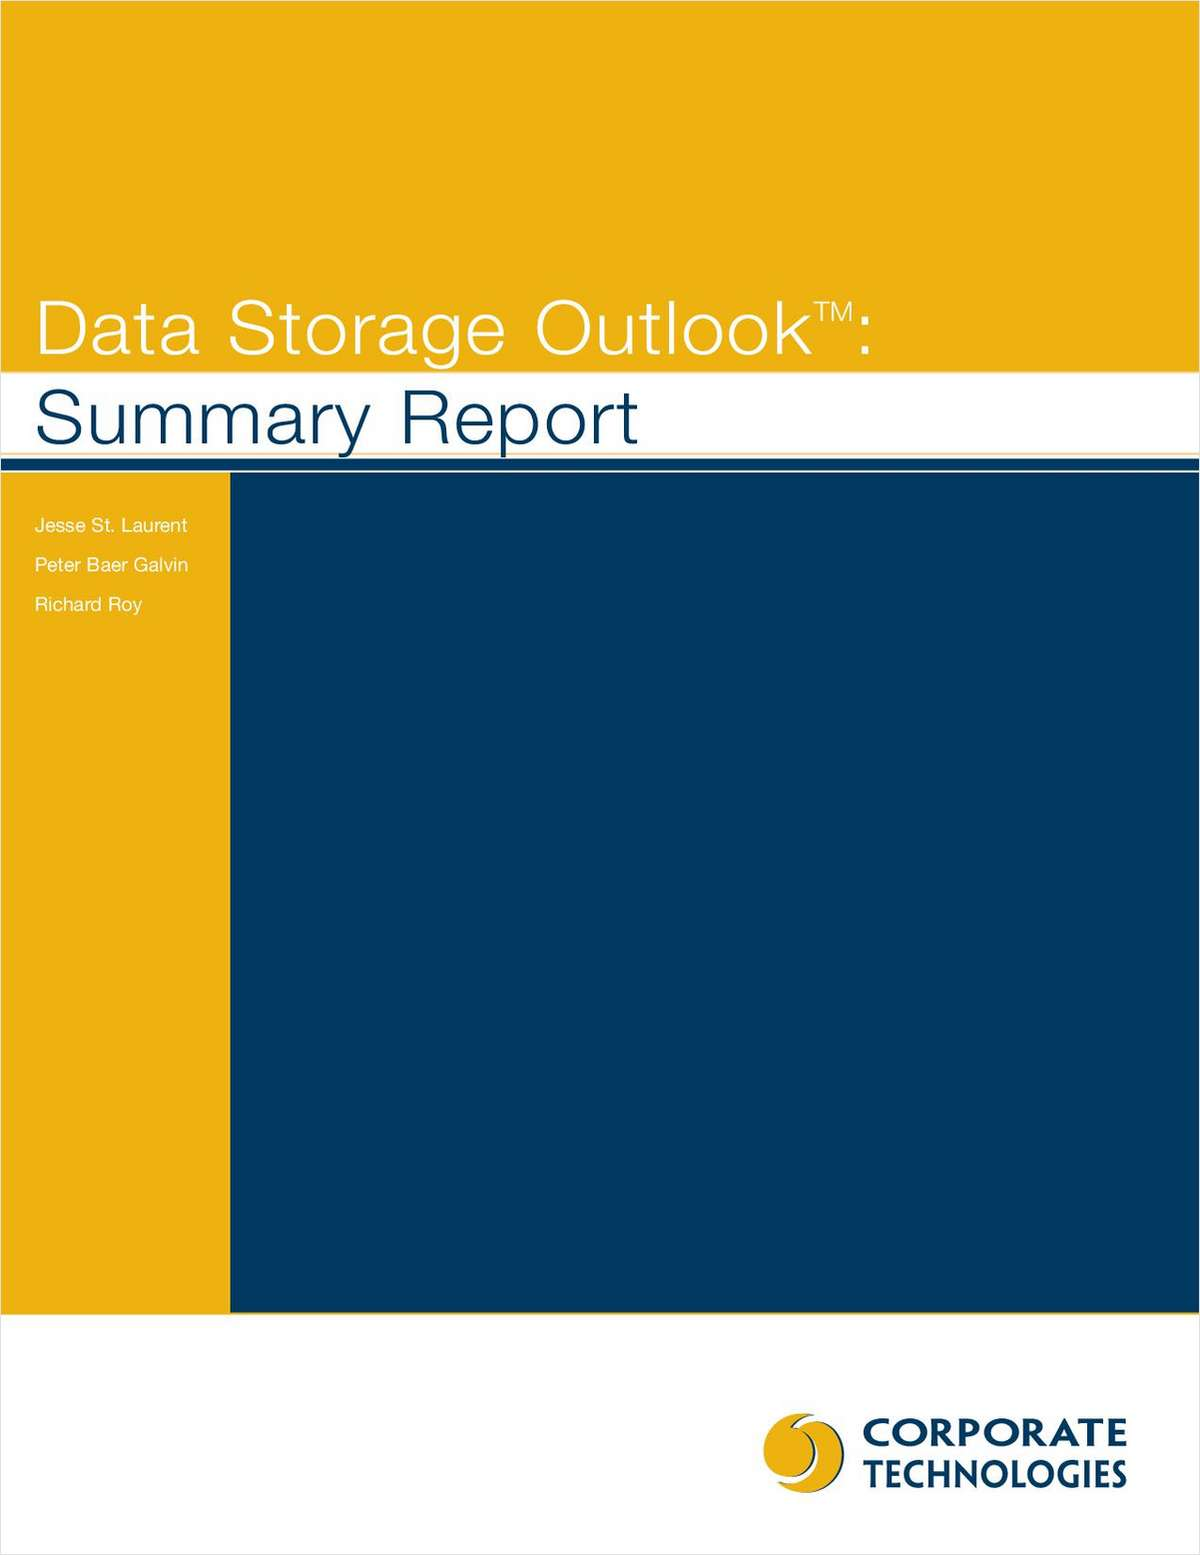 Data Storage Outlook Summary Report